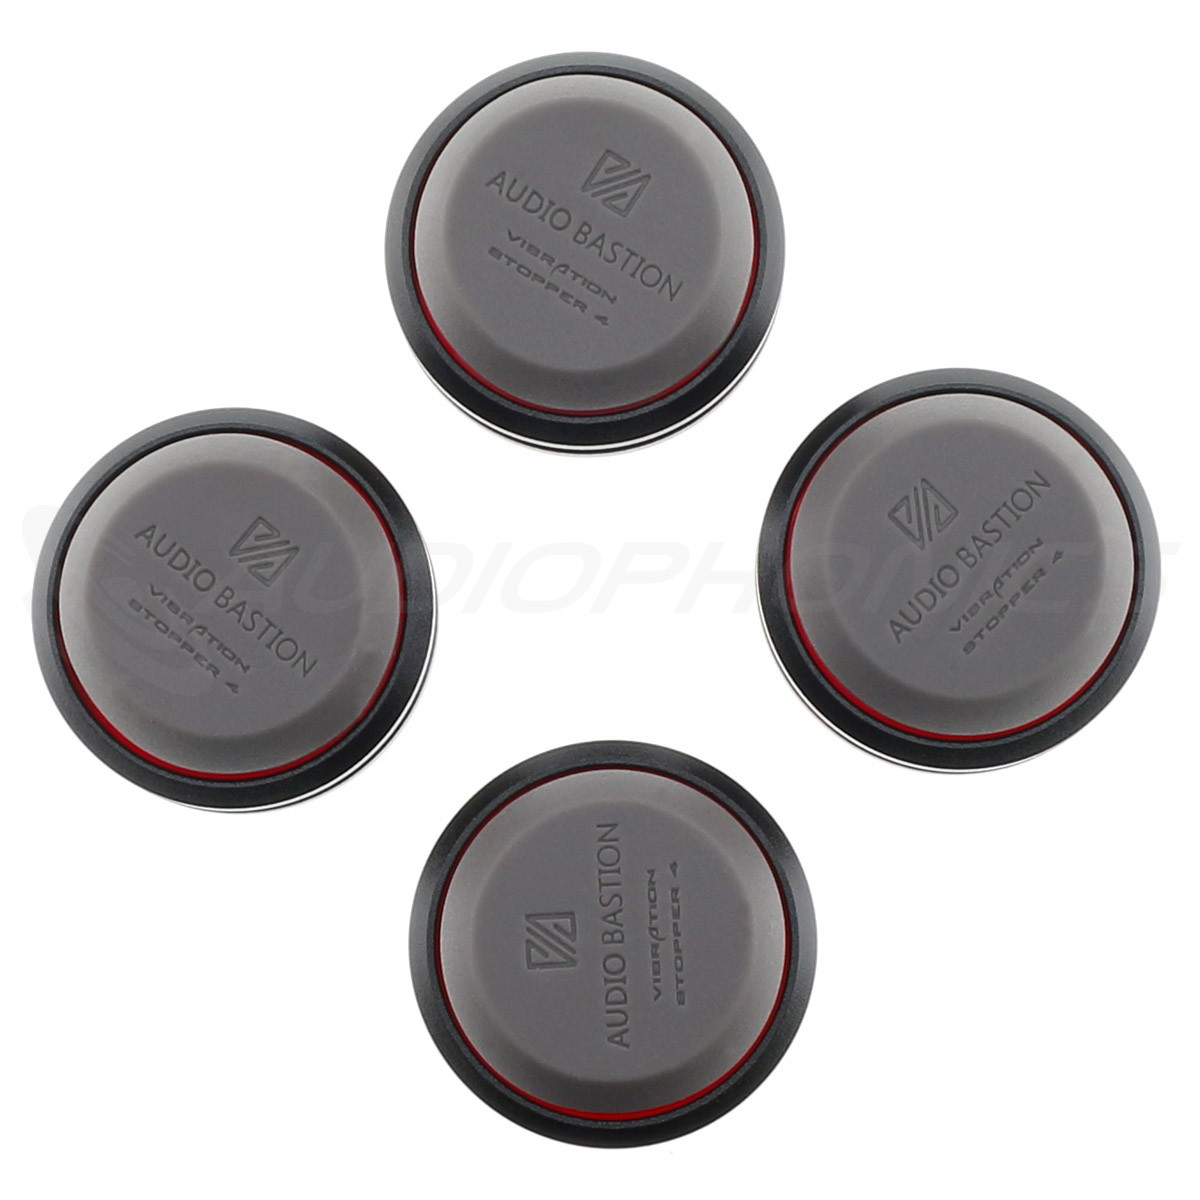 AUDIO BASTION REDLINE DAMPER Anti Vibration Damping Pads Aluminum / Silicone 41 x 17mm (Set x4)